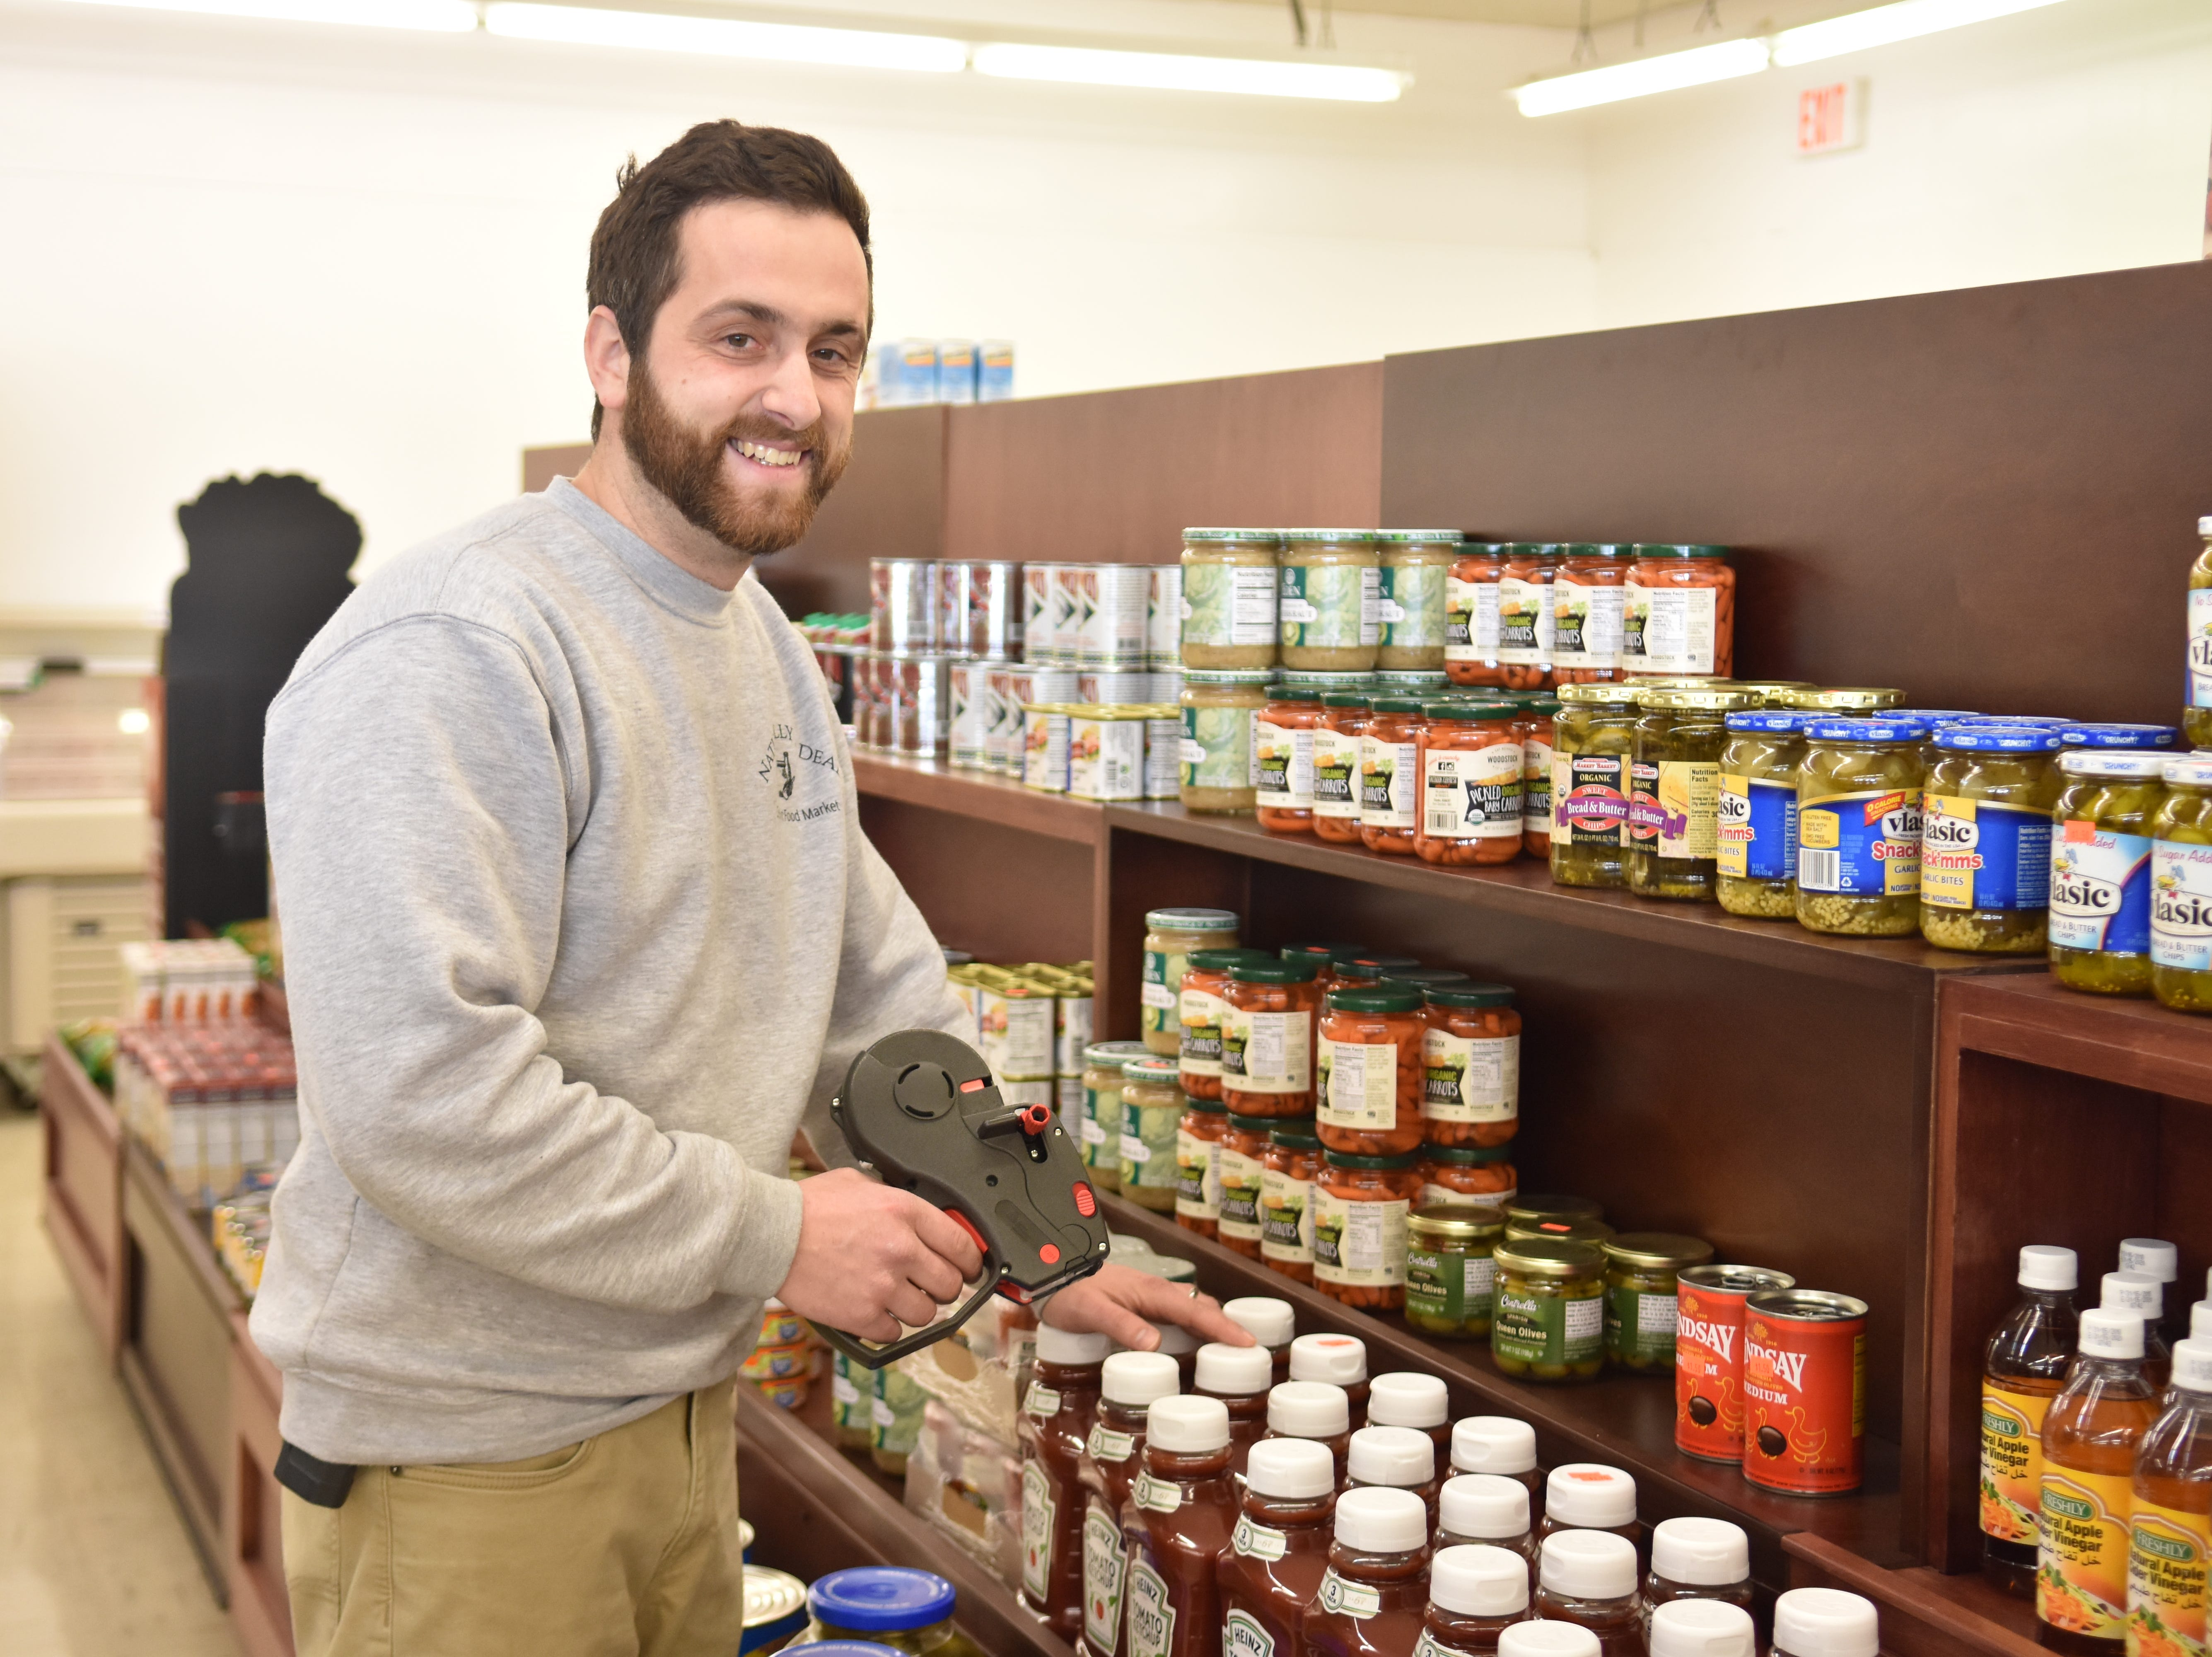 Jon Einwechter, owner of Naturally a Deal, prices food items.